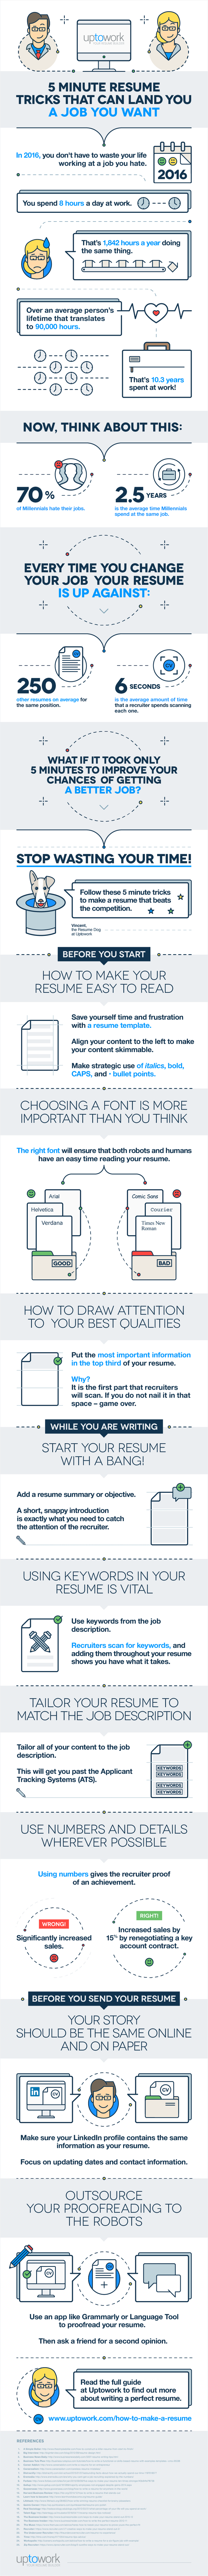 five minute hacks to improve your resume infographic